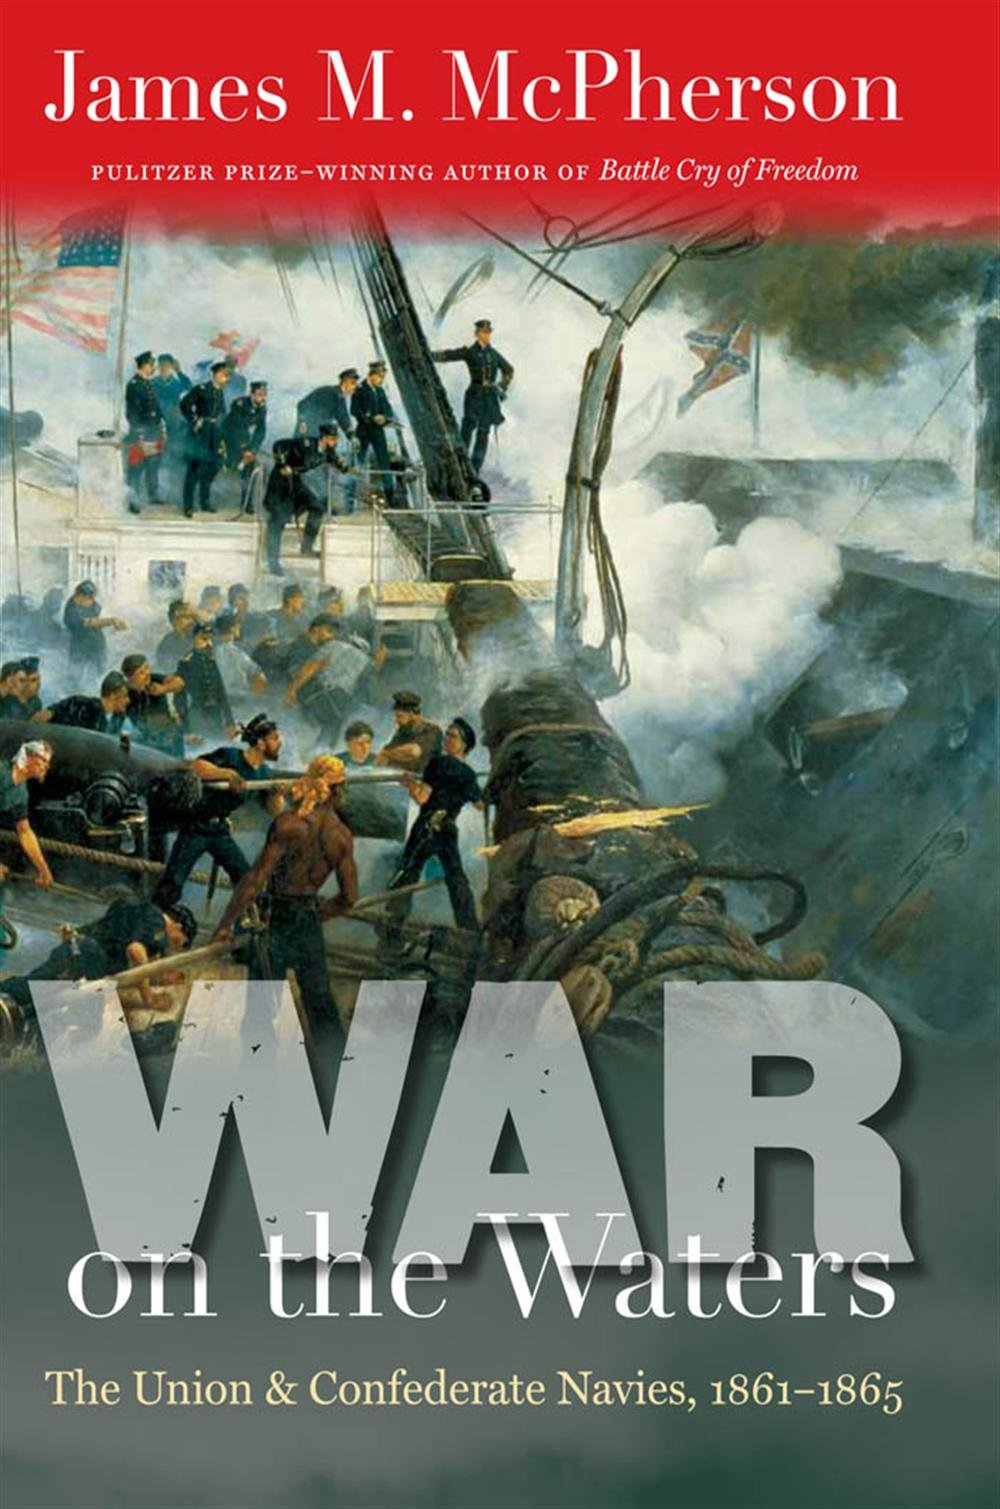 James McPherson, War on the Waters: The Union and Confederate Navies, 1861-1865-Click the link below for more about this book